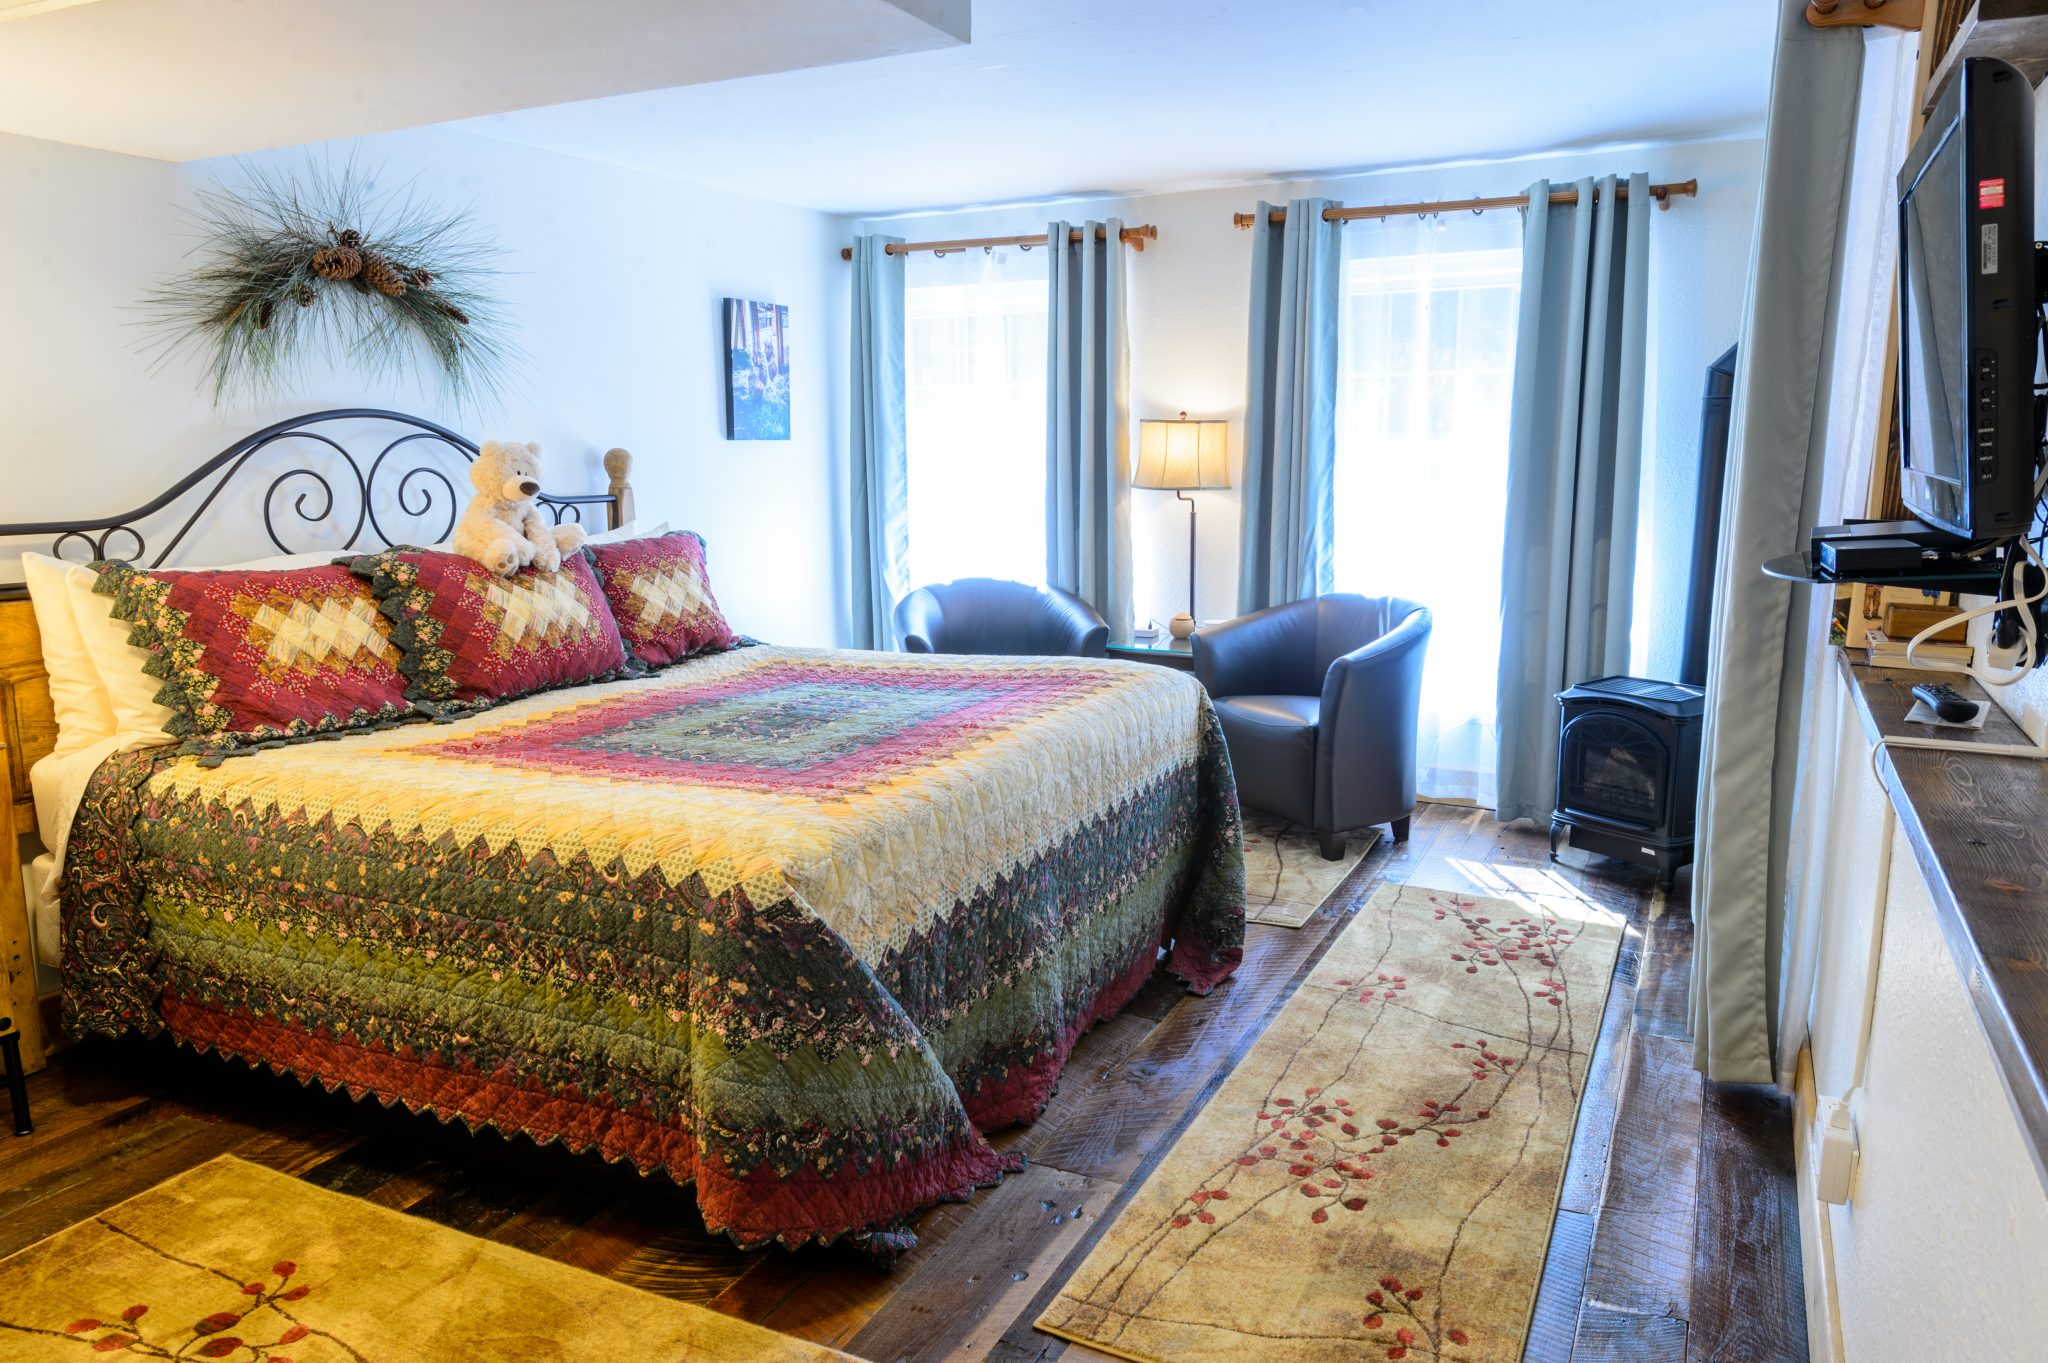 King Bed and Sitting Area